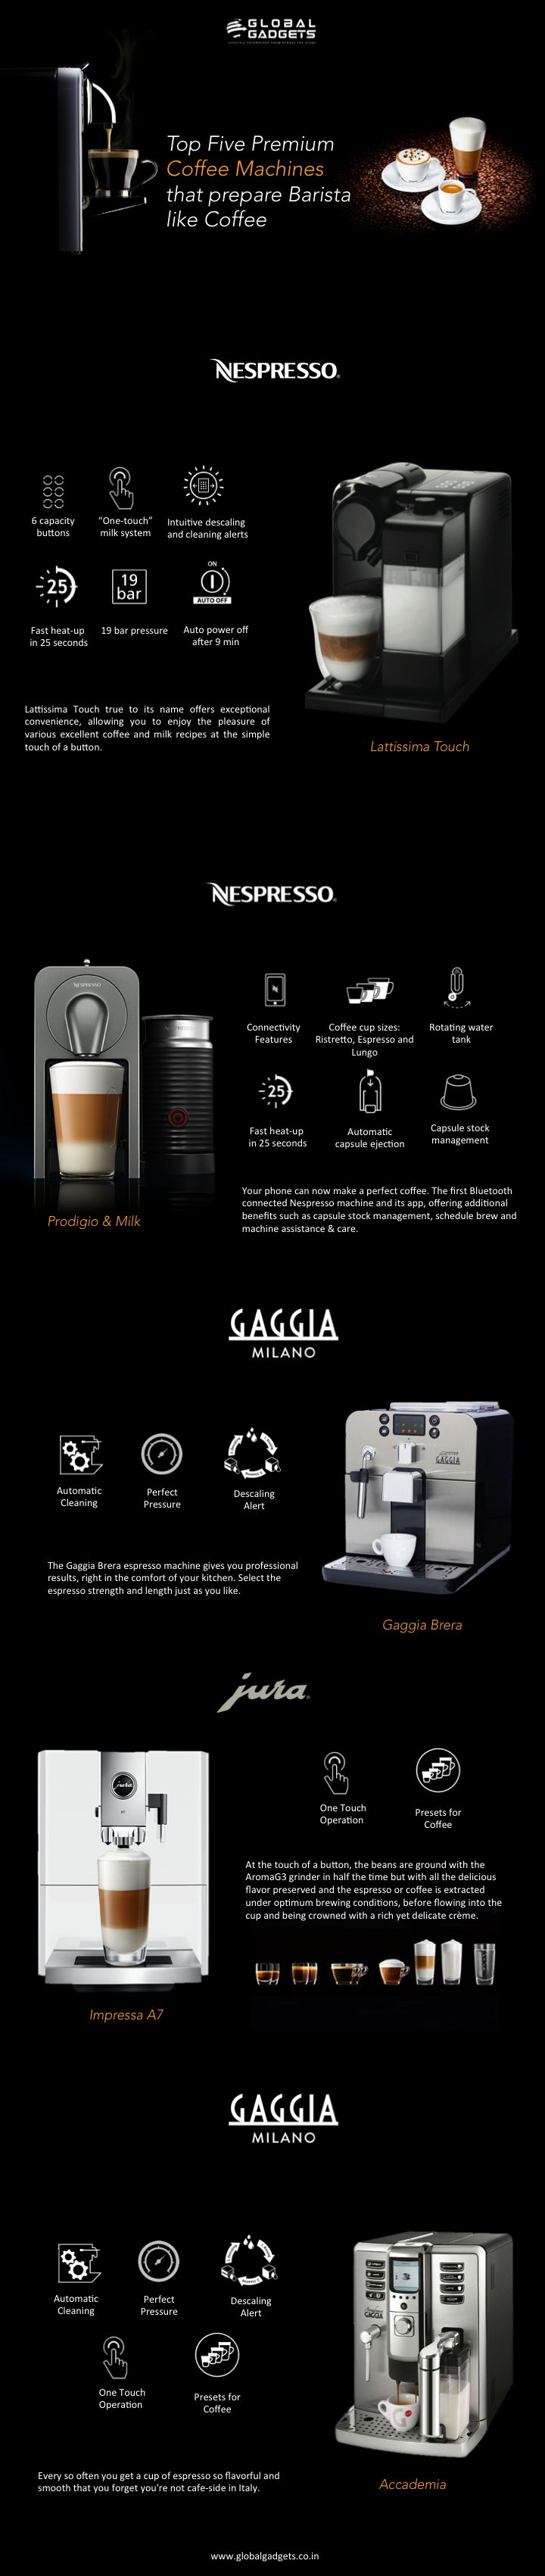 These infographic explains the USP and features of Top Five Premium Coffee Machines that will prepare your favorite coffee like a Barista. https://www.globalgadgets.co.in/nespresso/coffee-machines.